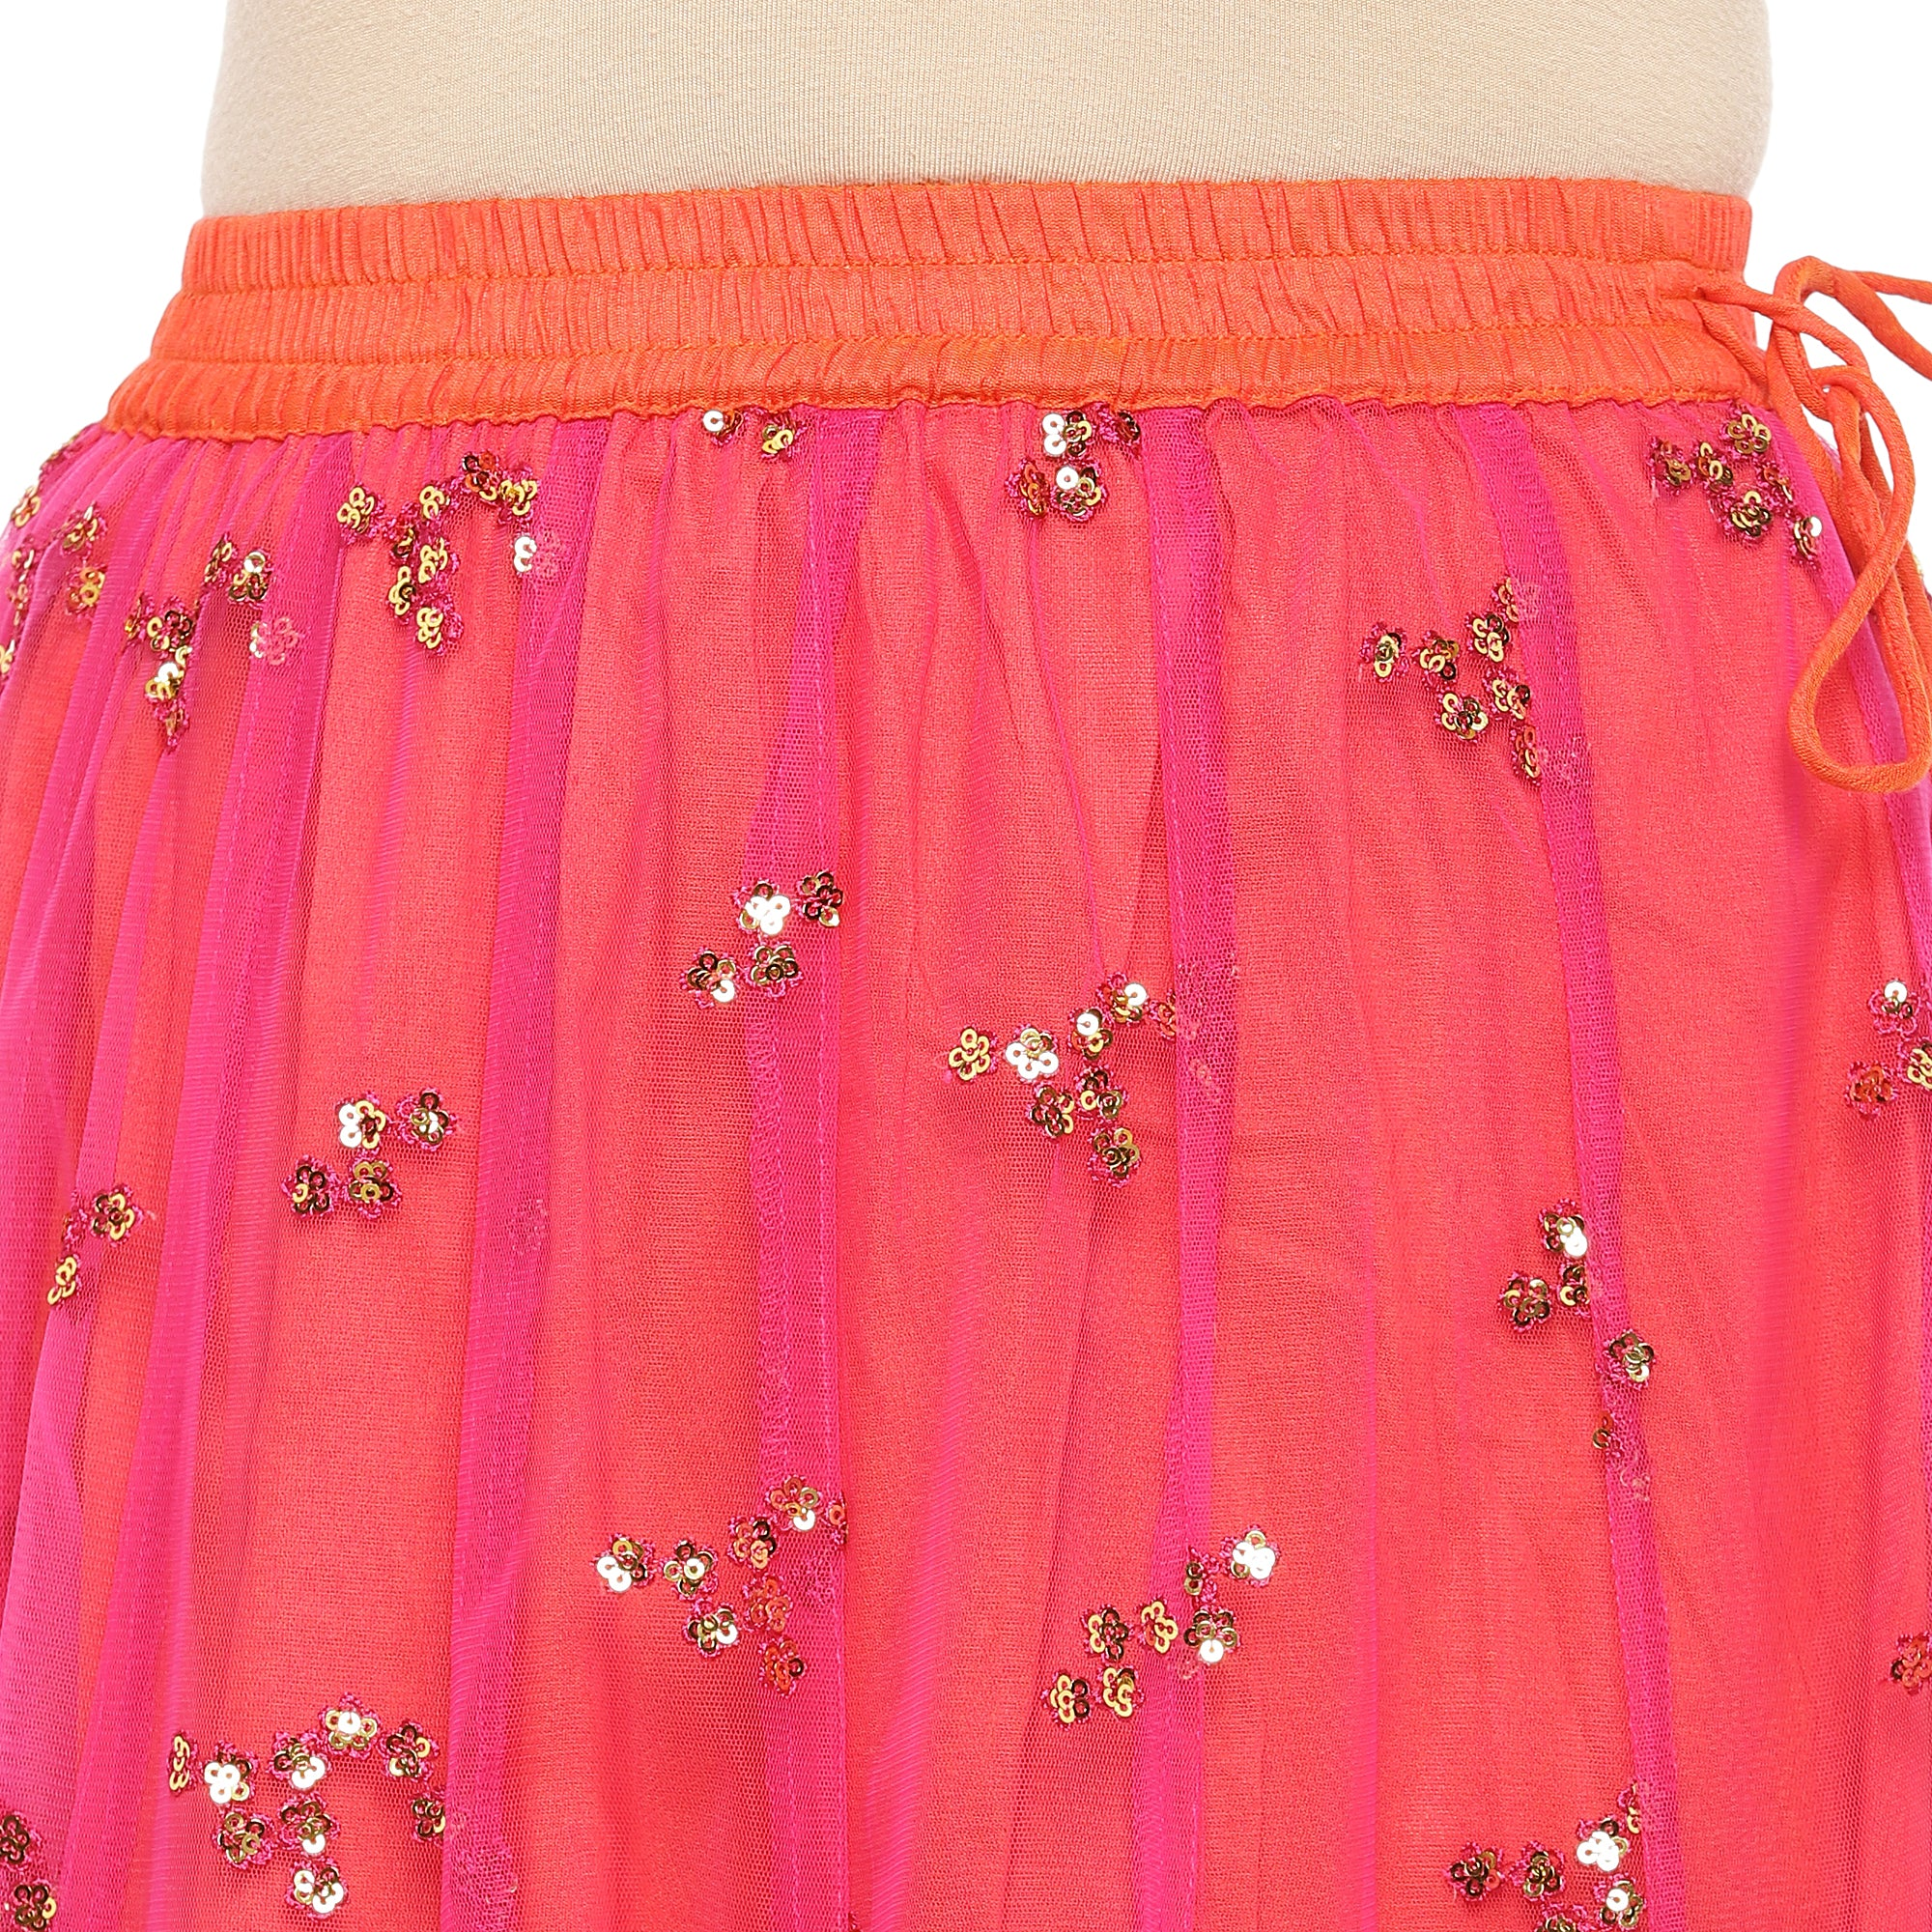 Coral Pink Embellished Flared Maxi Ethnic Skirt-5